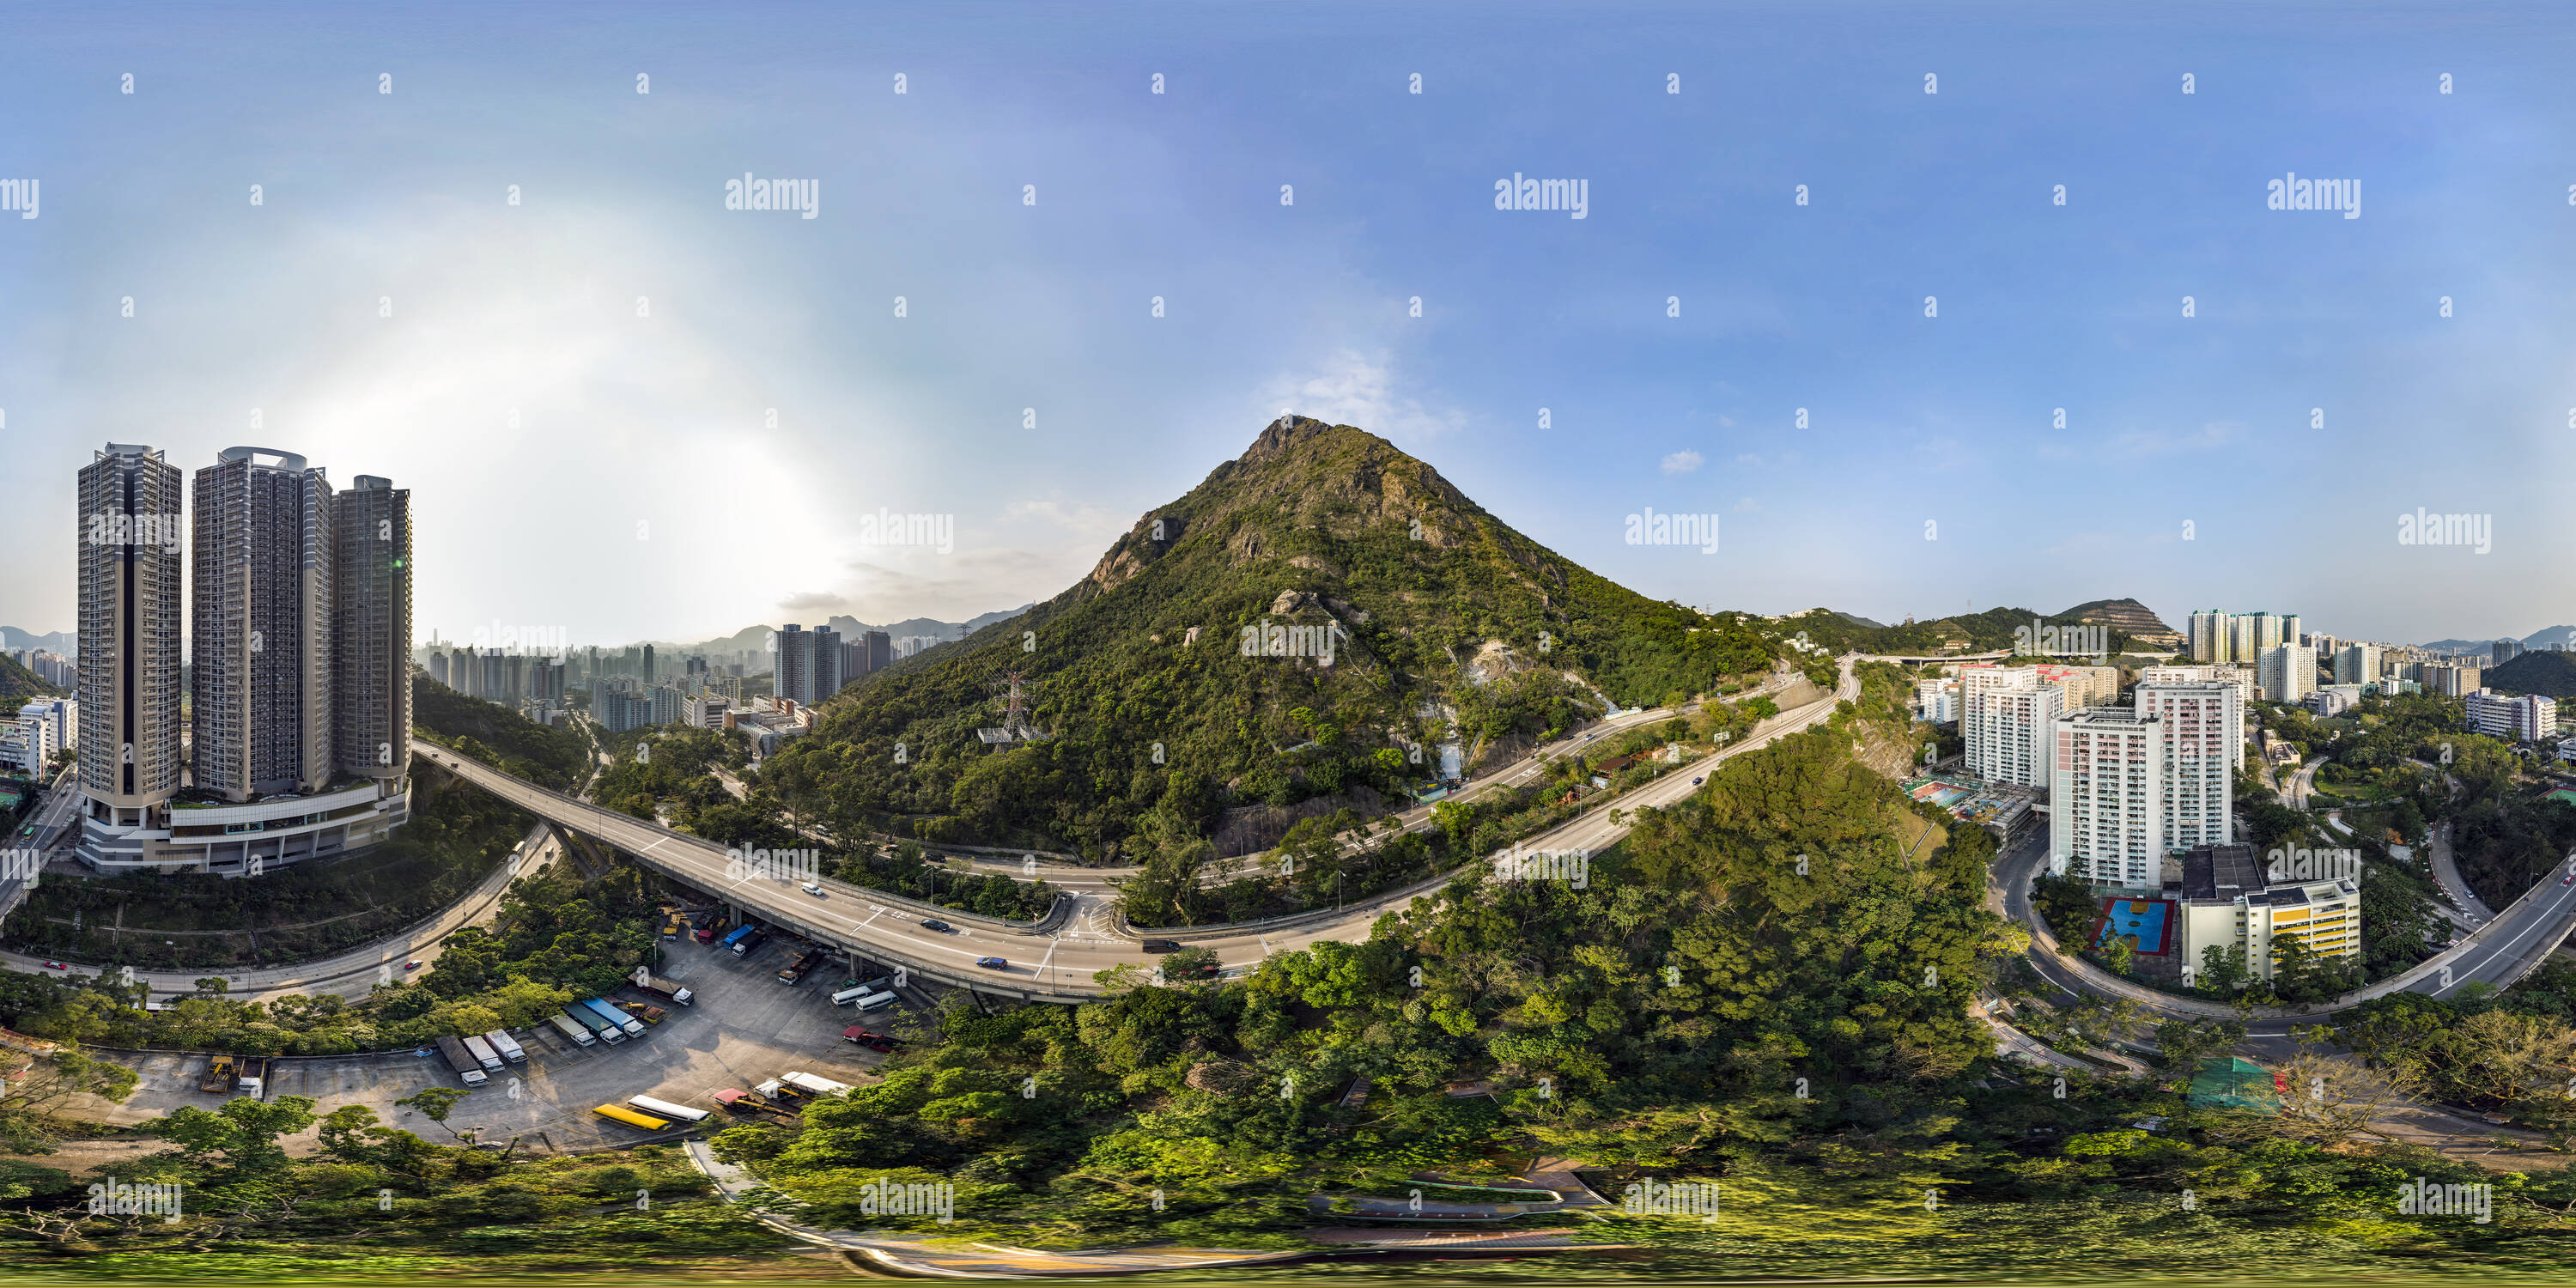 Pic Kowloon(飛鵝山新清水灣道), Nouvelle Clear Water Bay Rd, HK. Photo Stock